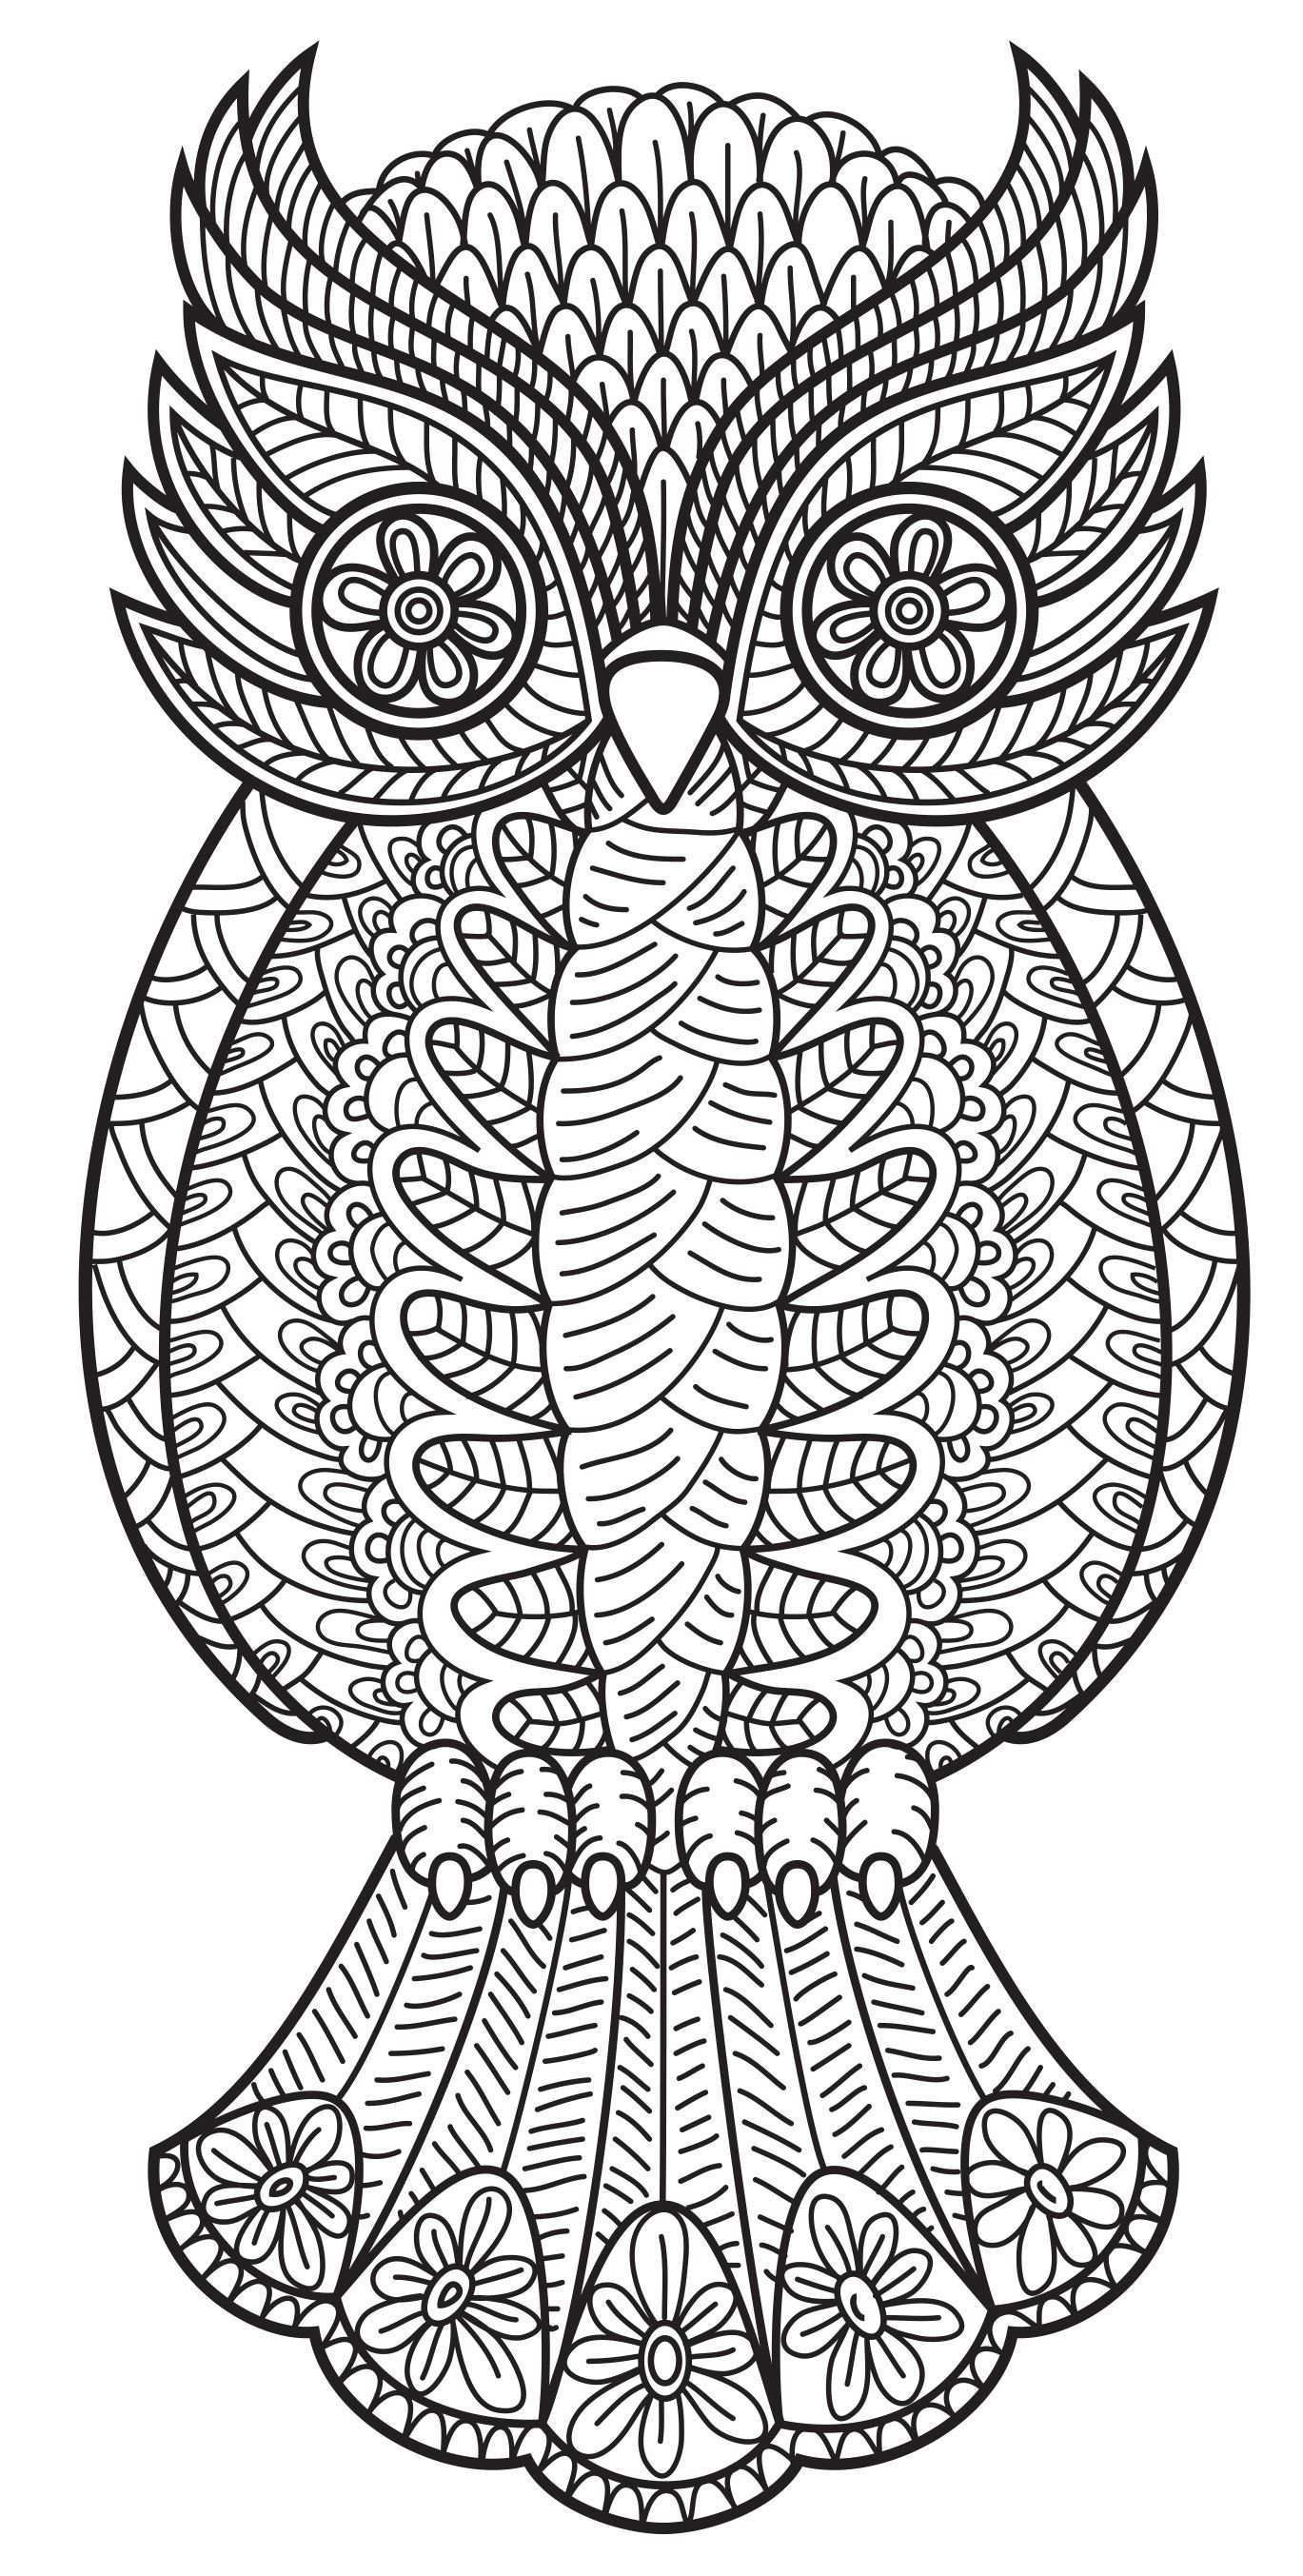 Pattern Coloring Books Owl Coloring Pages Animal Coloring Pages Coloring Pages